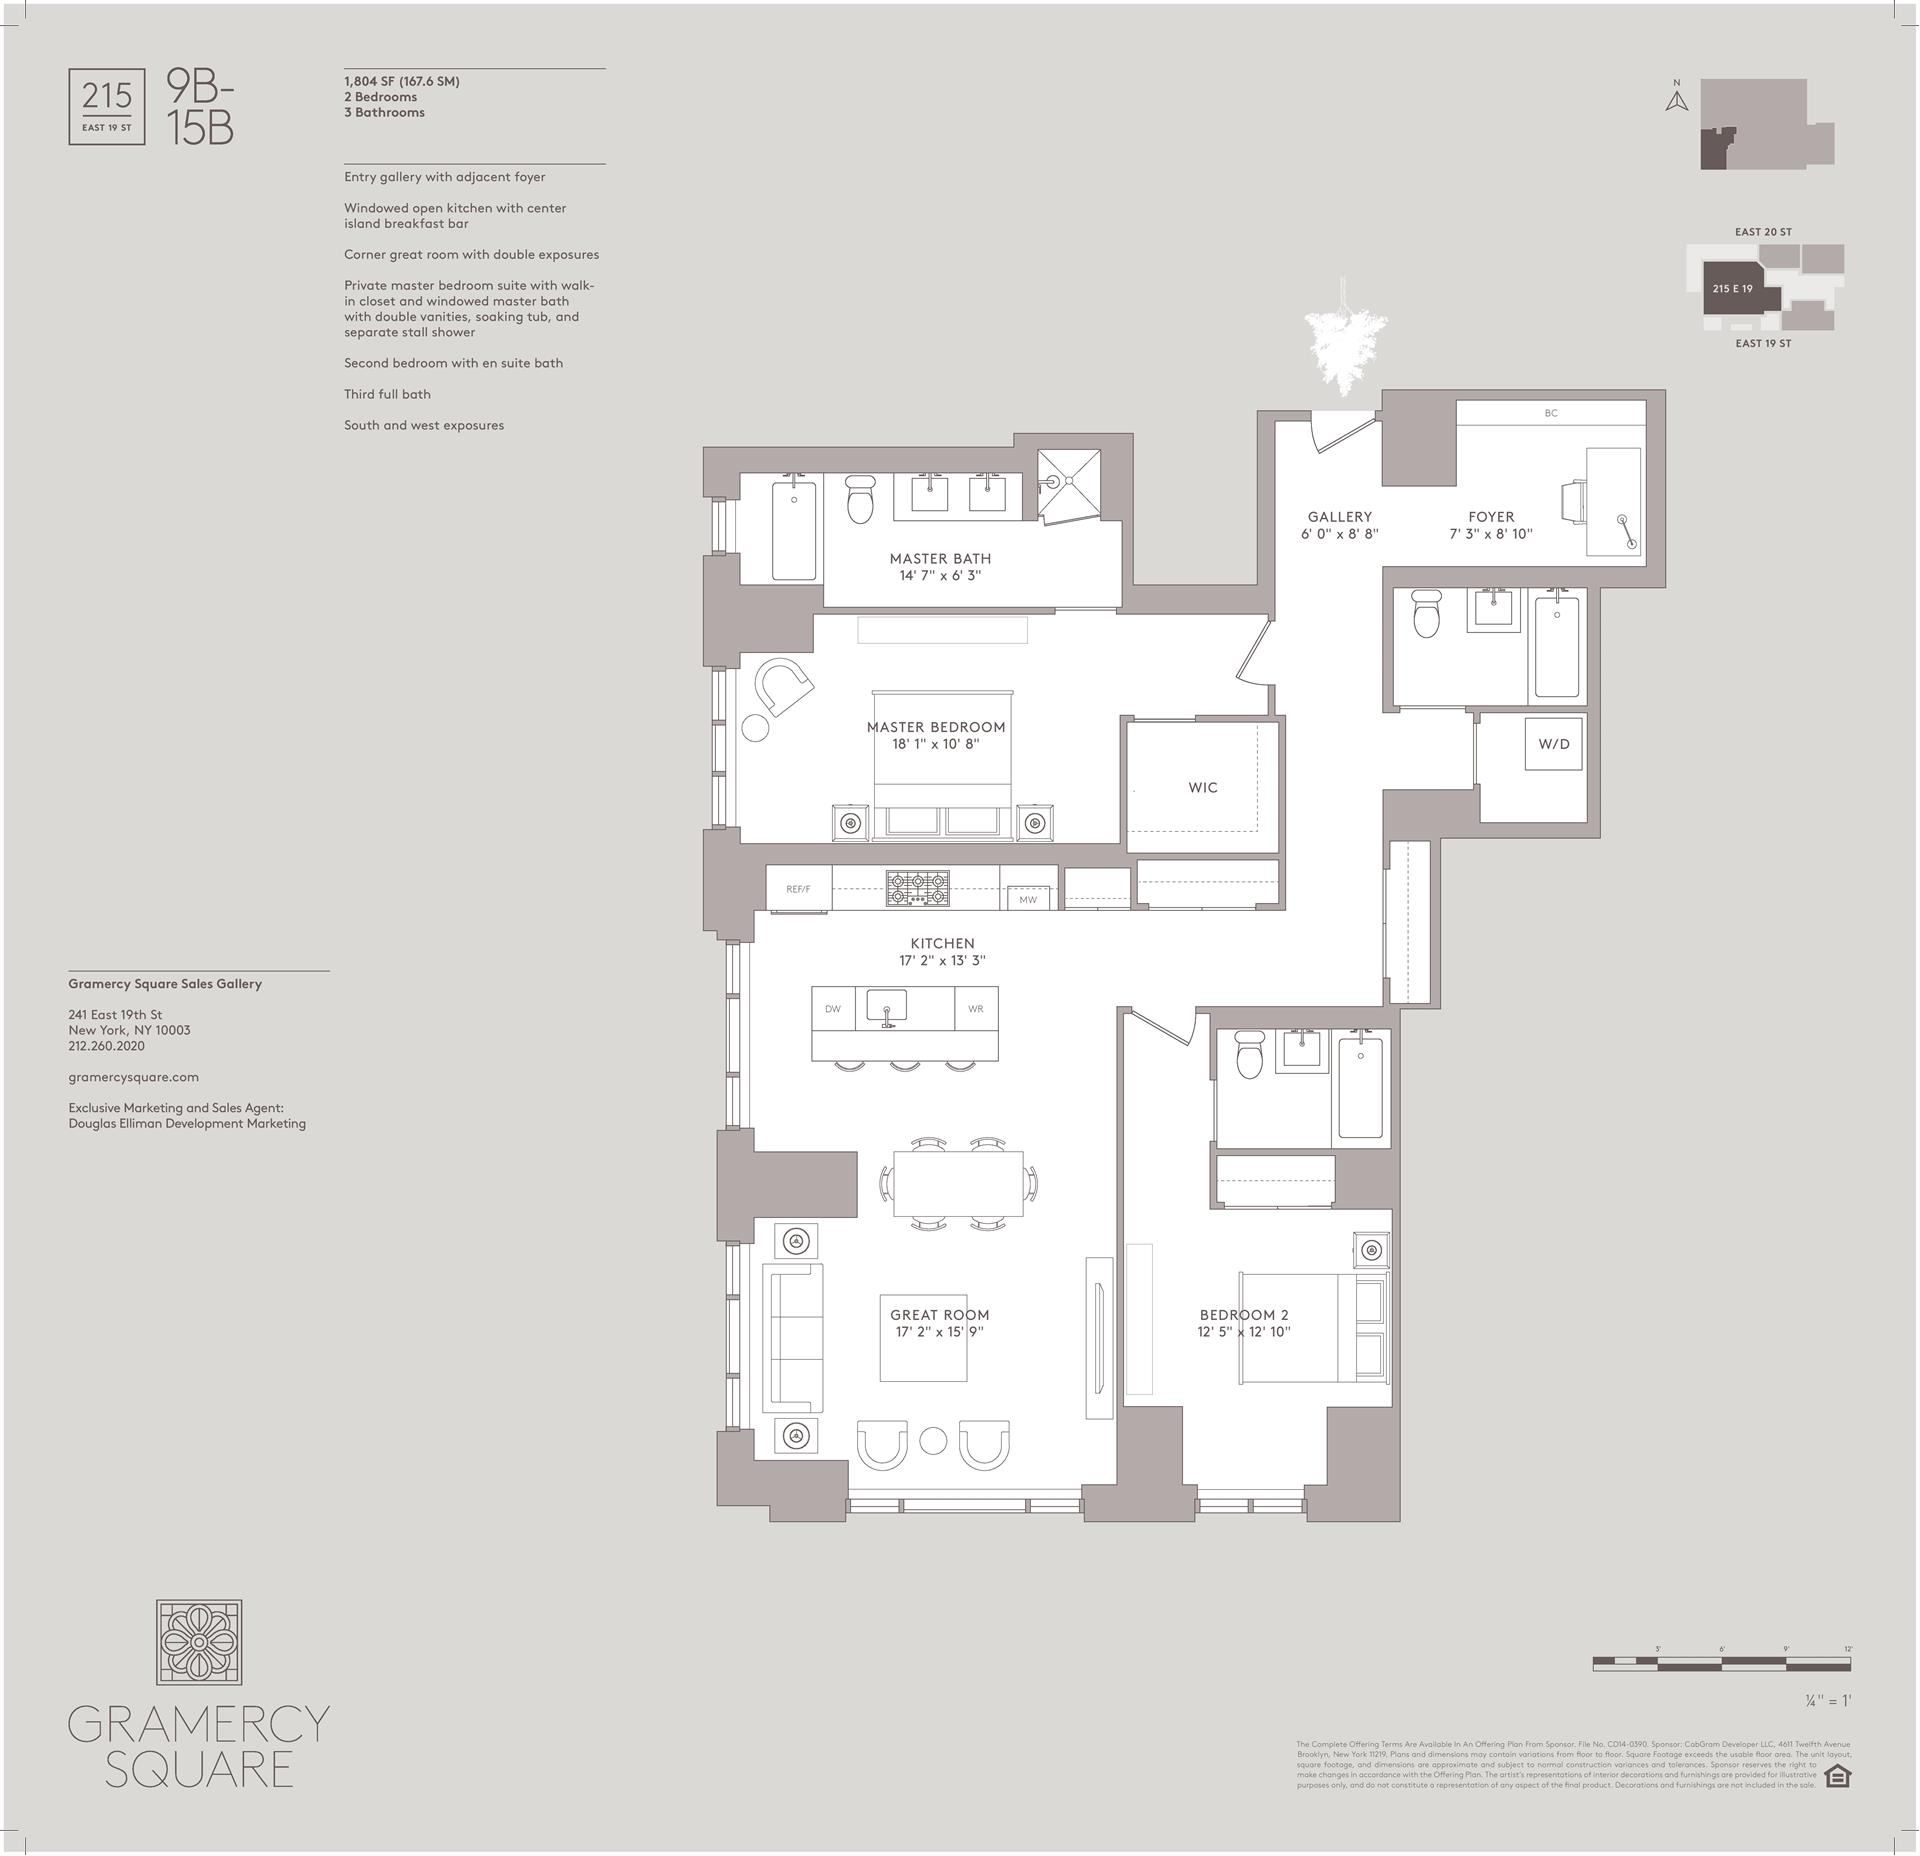 Floor plan of Gramercy Square, 215 East 19th St, 15B - Gramercy - Union Square, New York